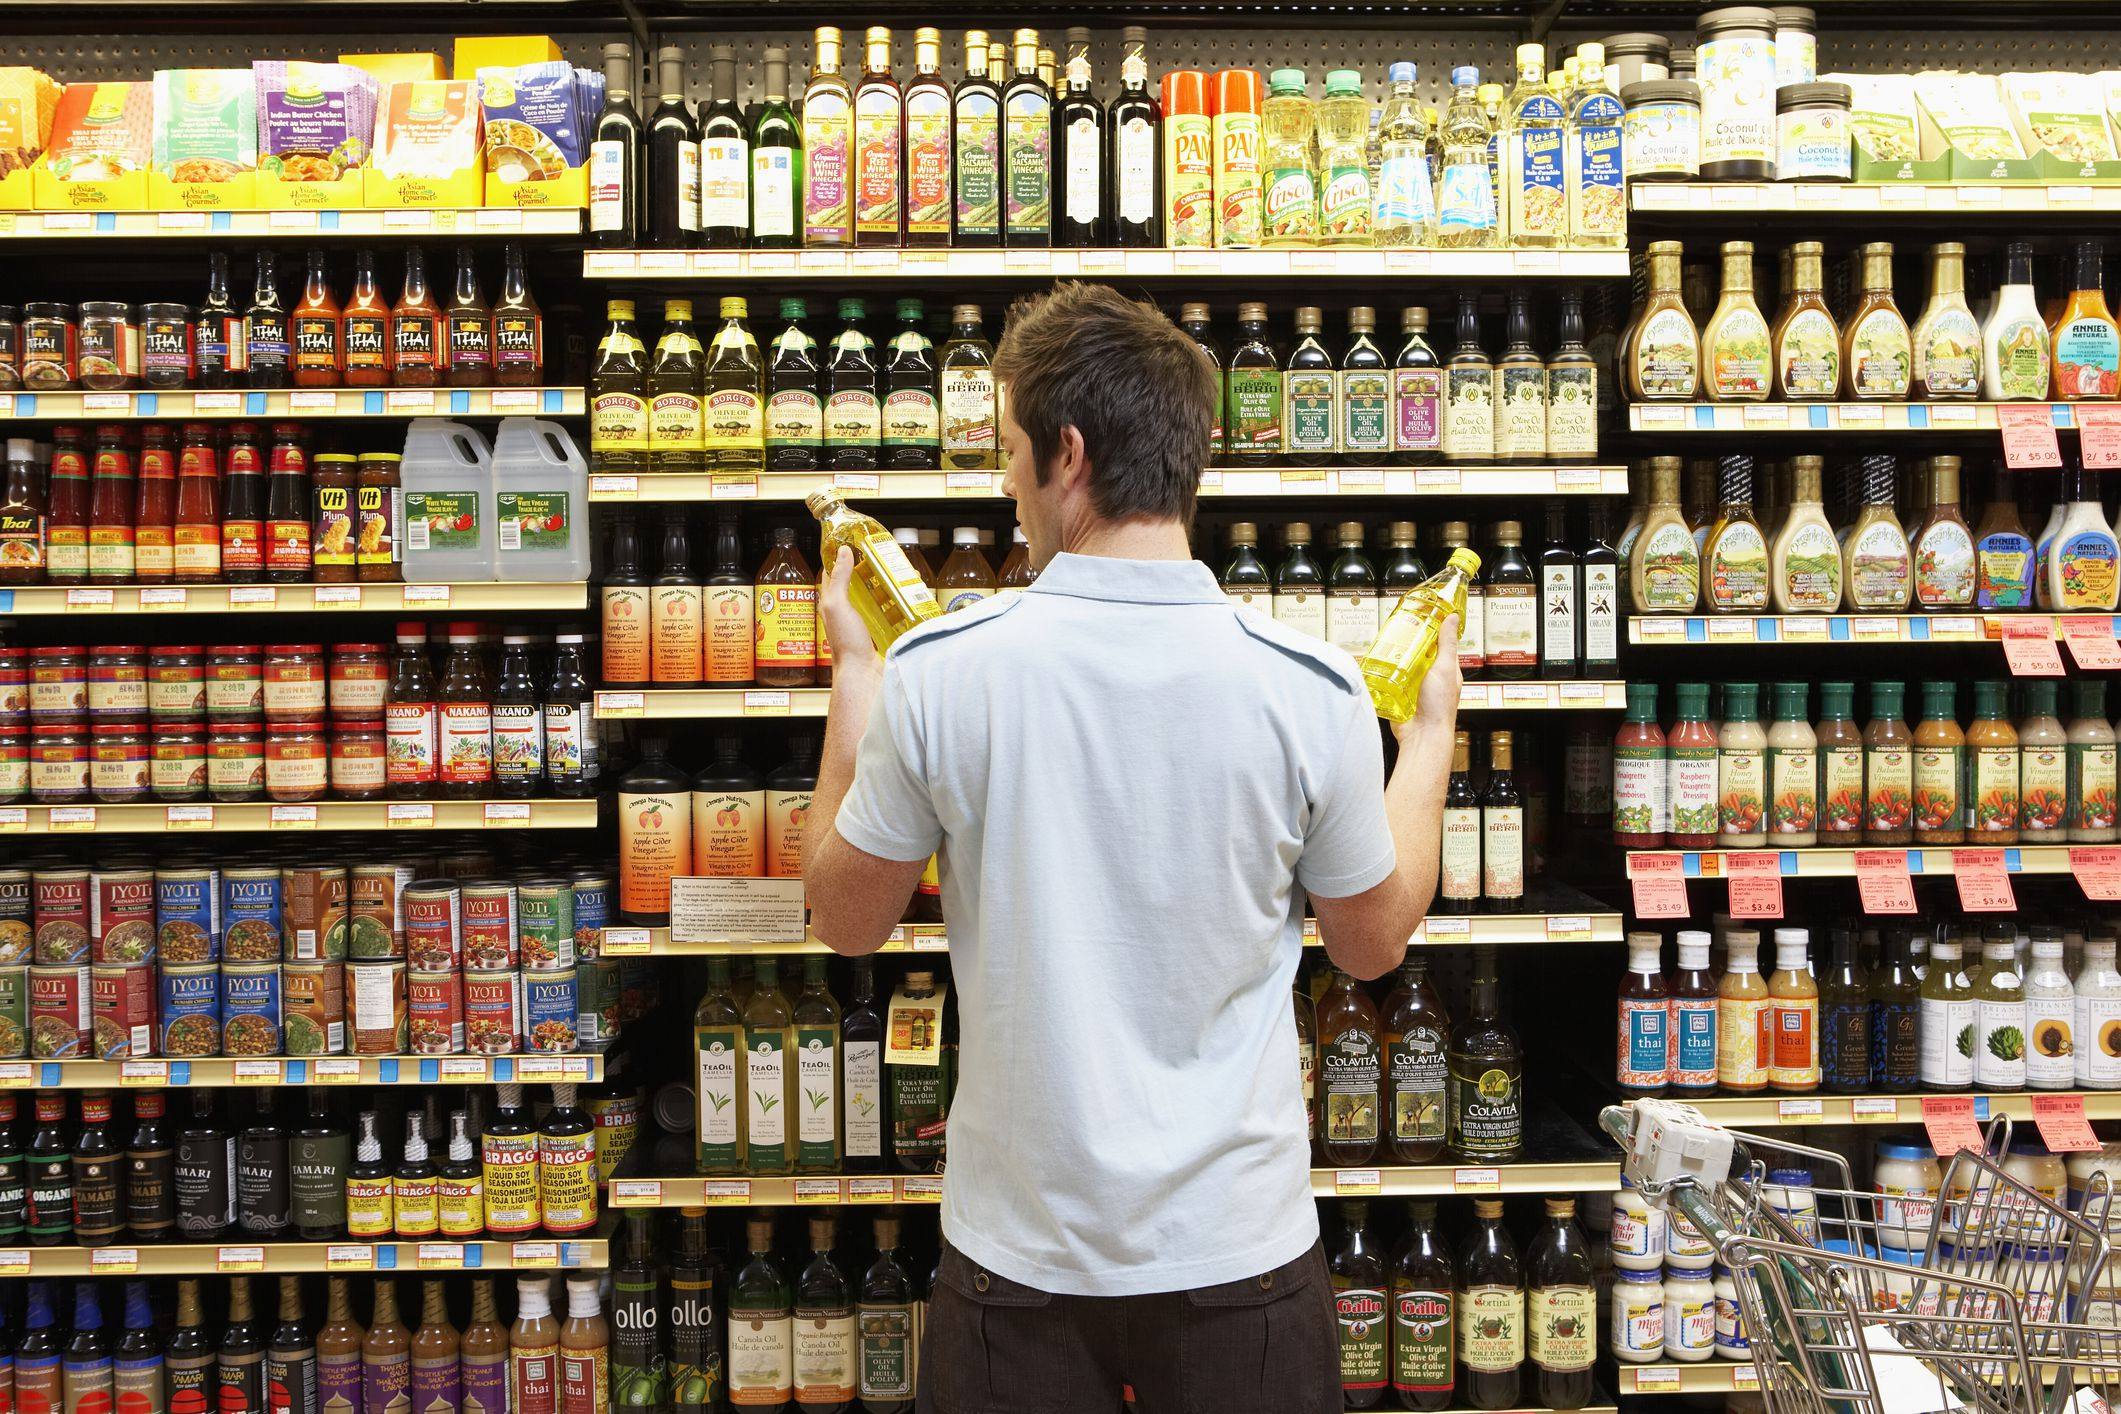 A man looking at oils in grocery store aisle